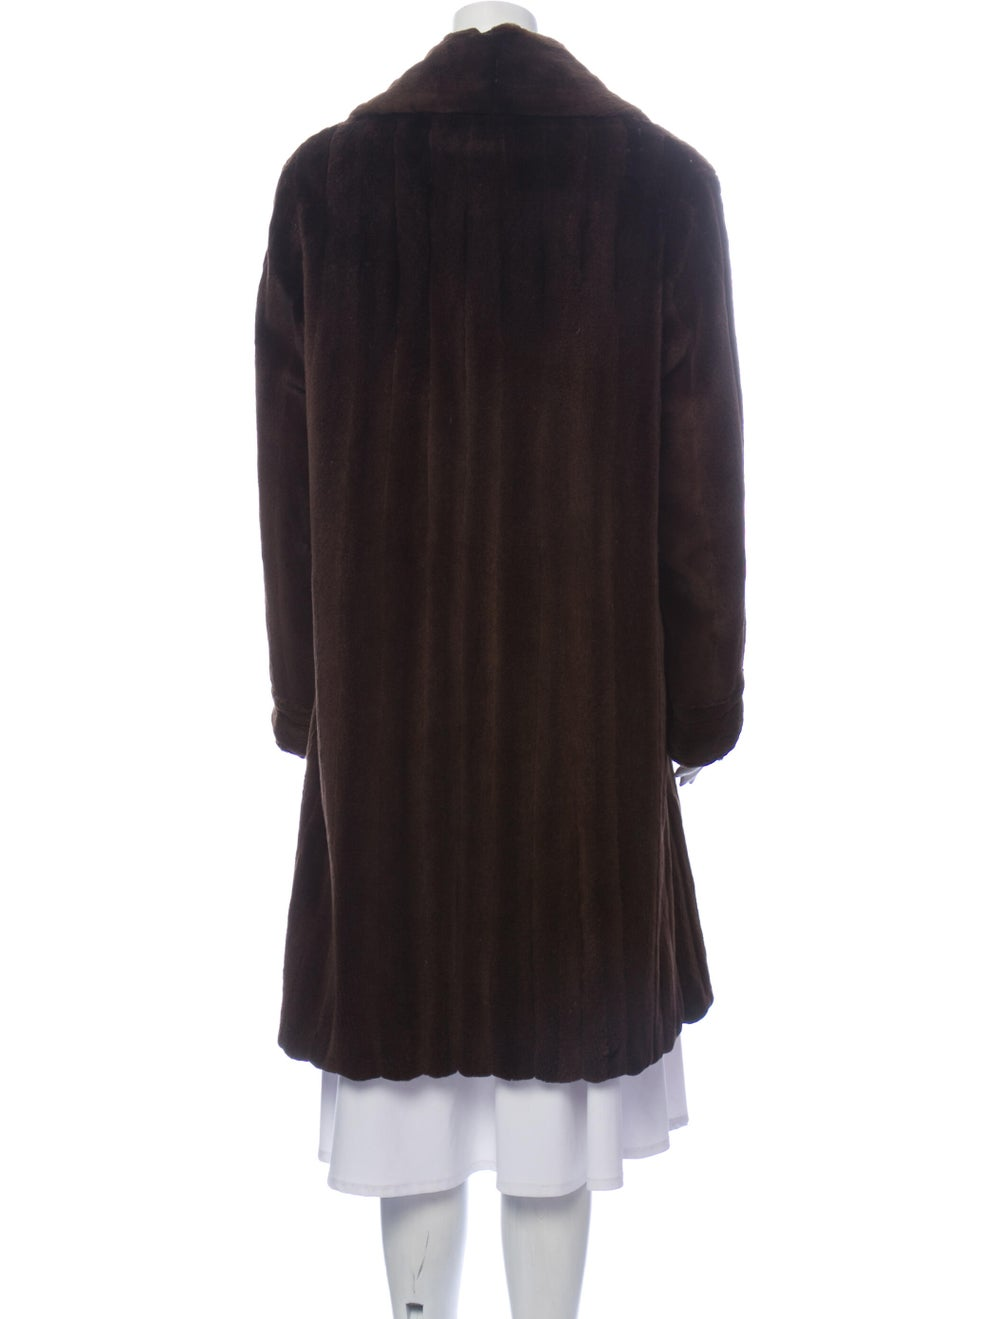 Fur Fur Coat Brown - image 3